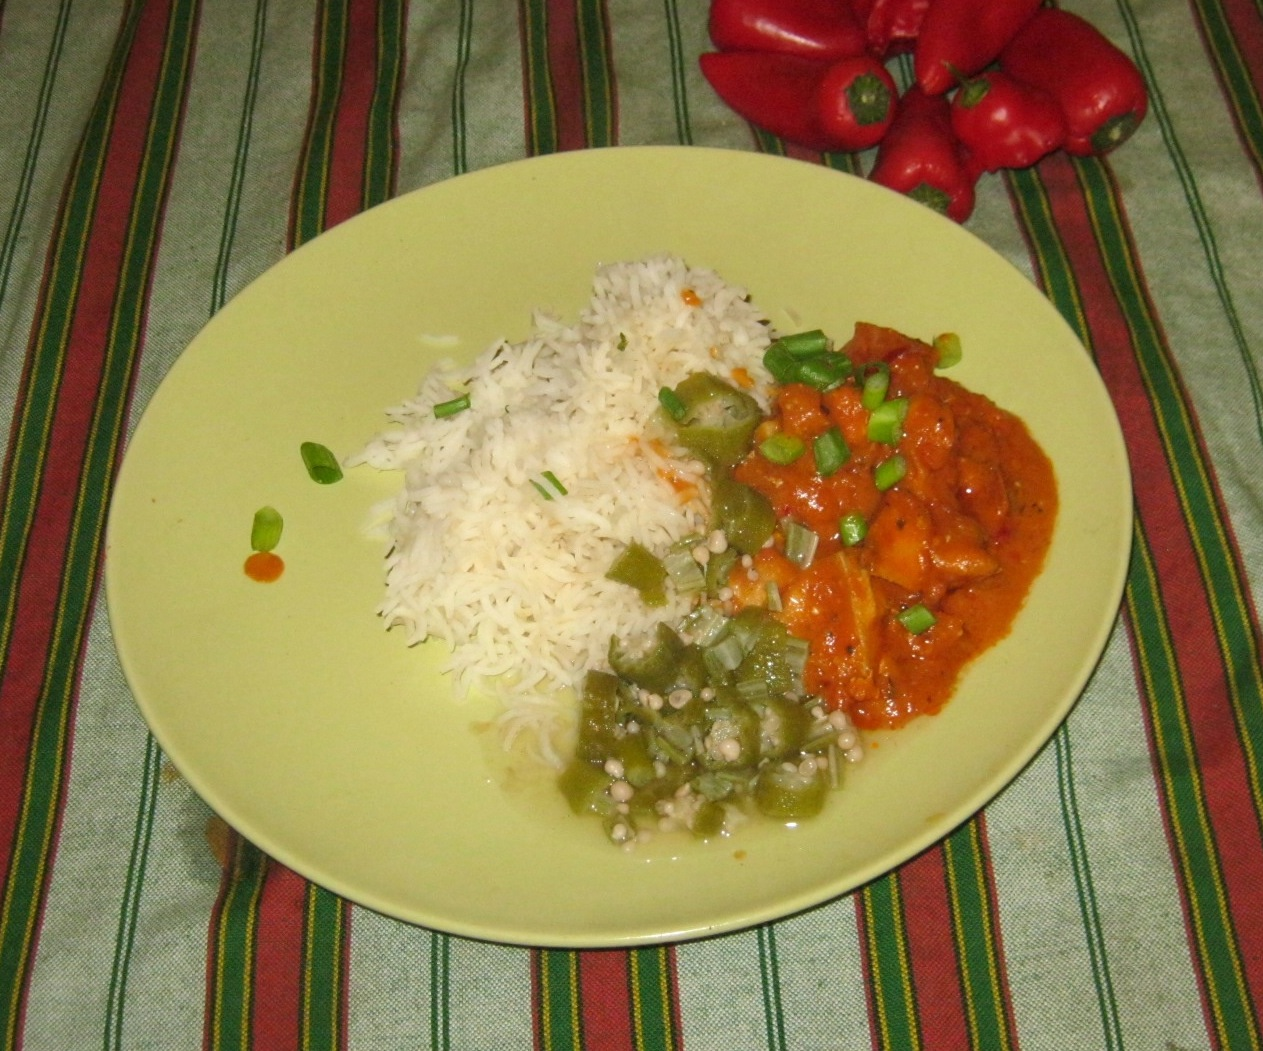 Hot Ghanaian Chicken Stew with rice and okra